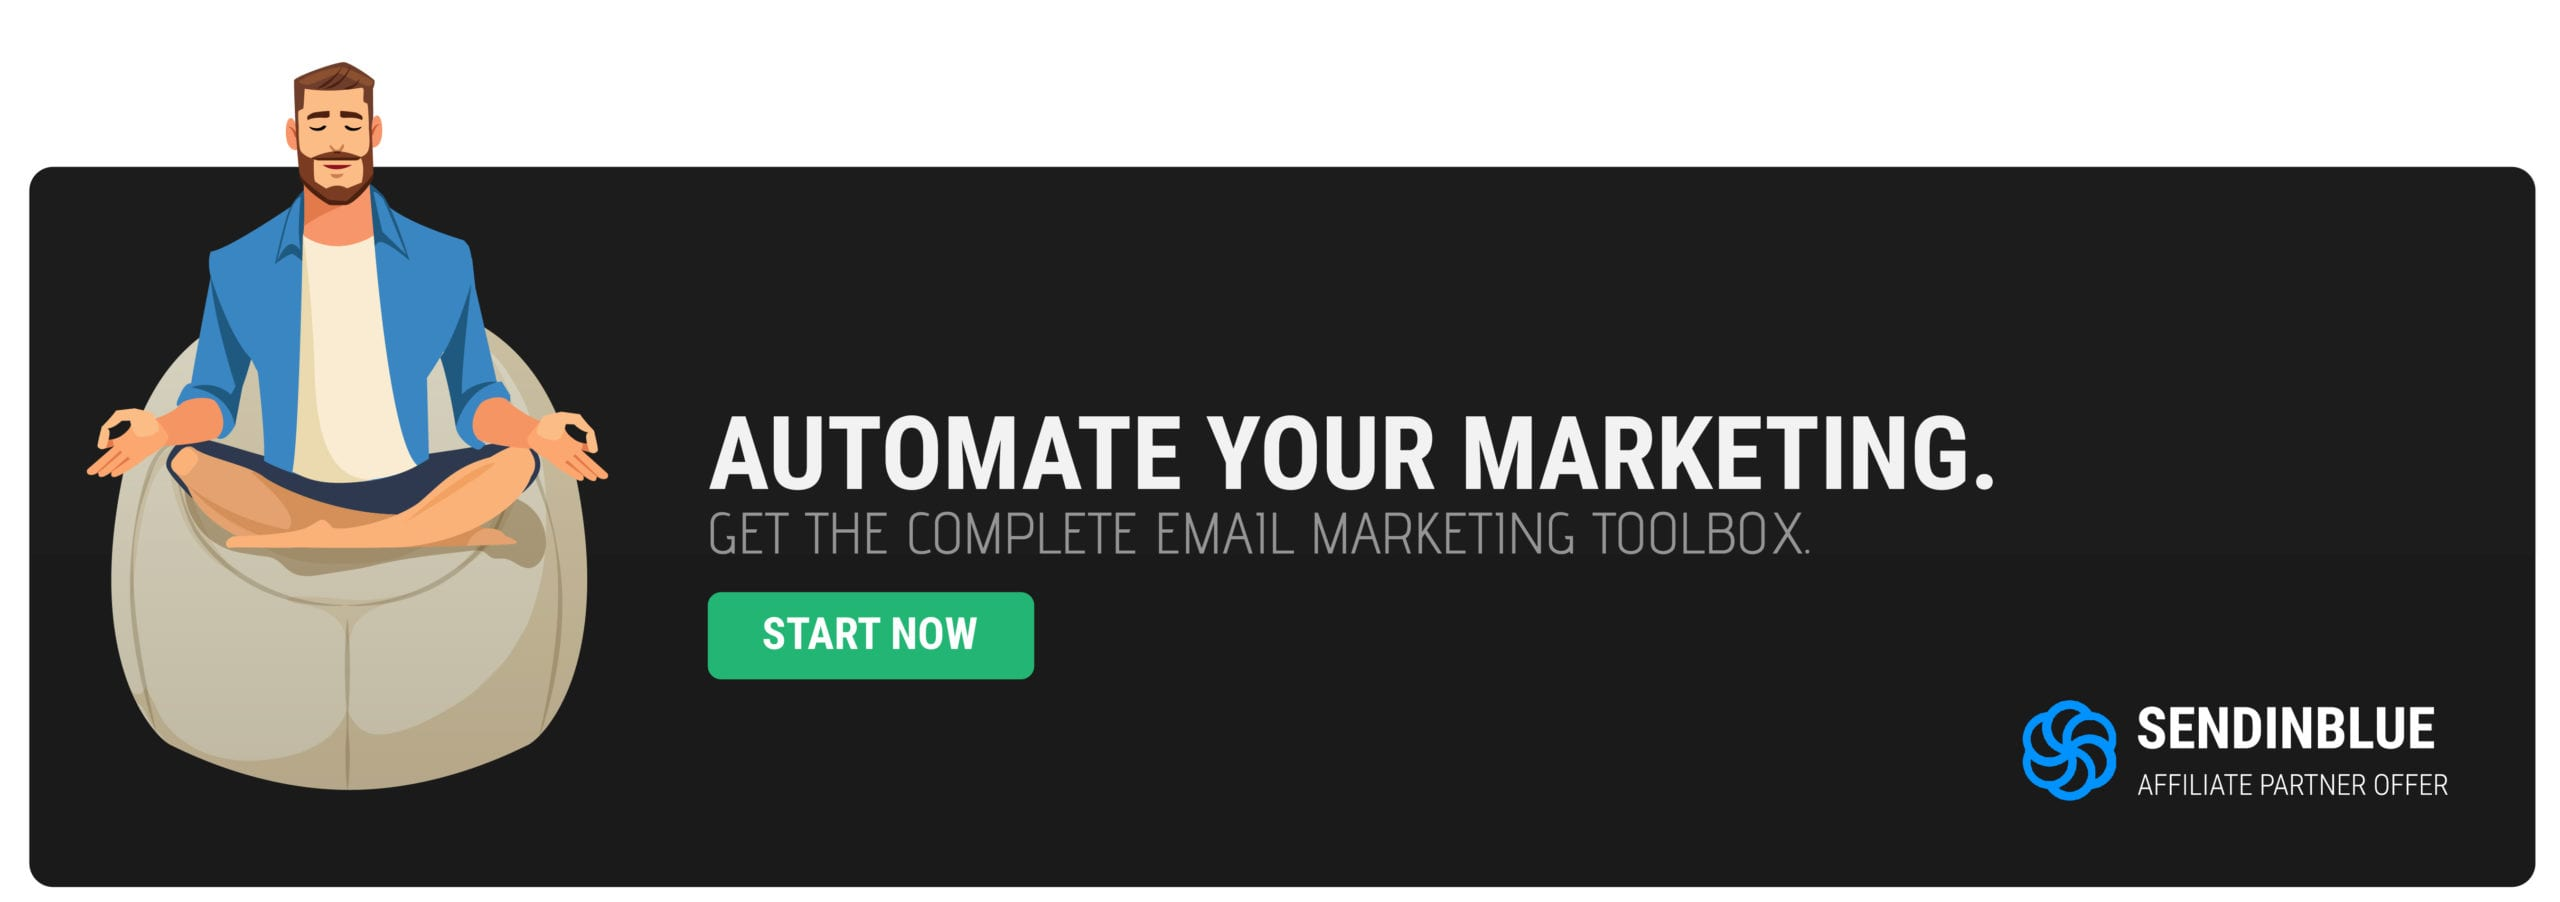 Automate your email marketing with Sendinblue.